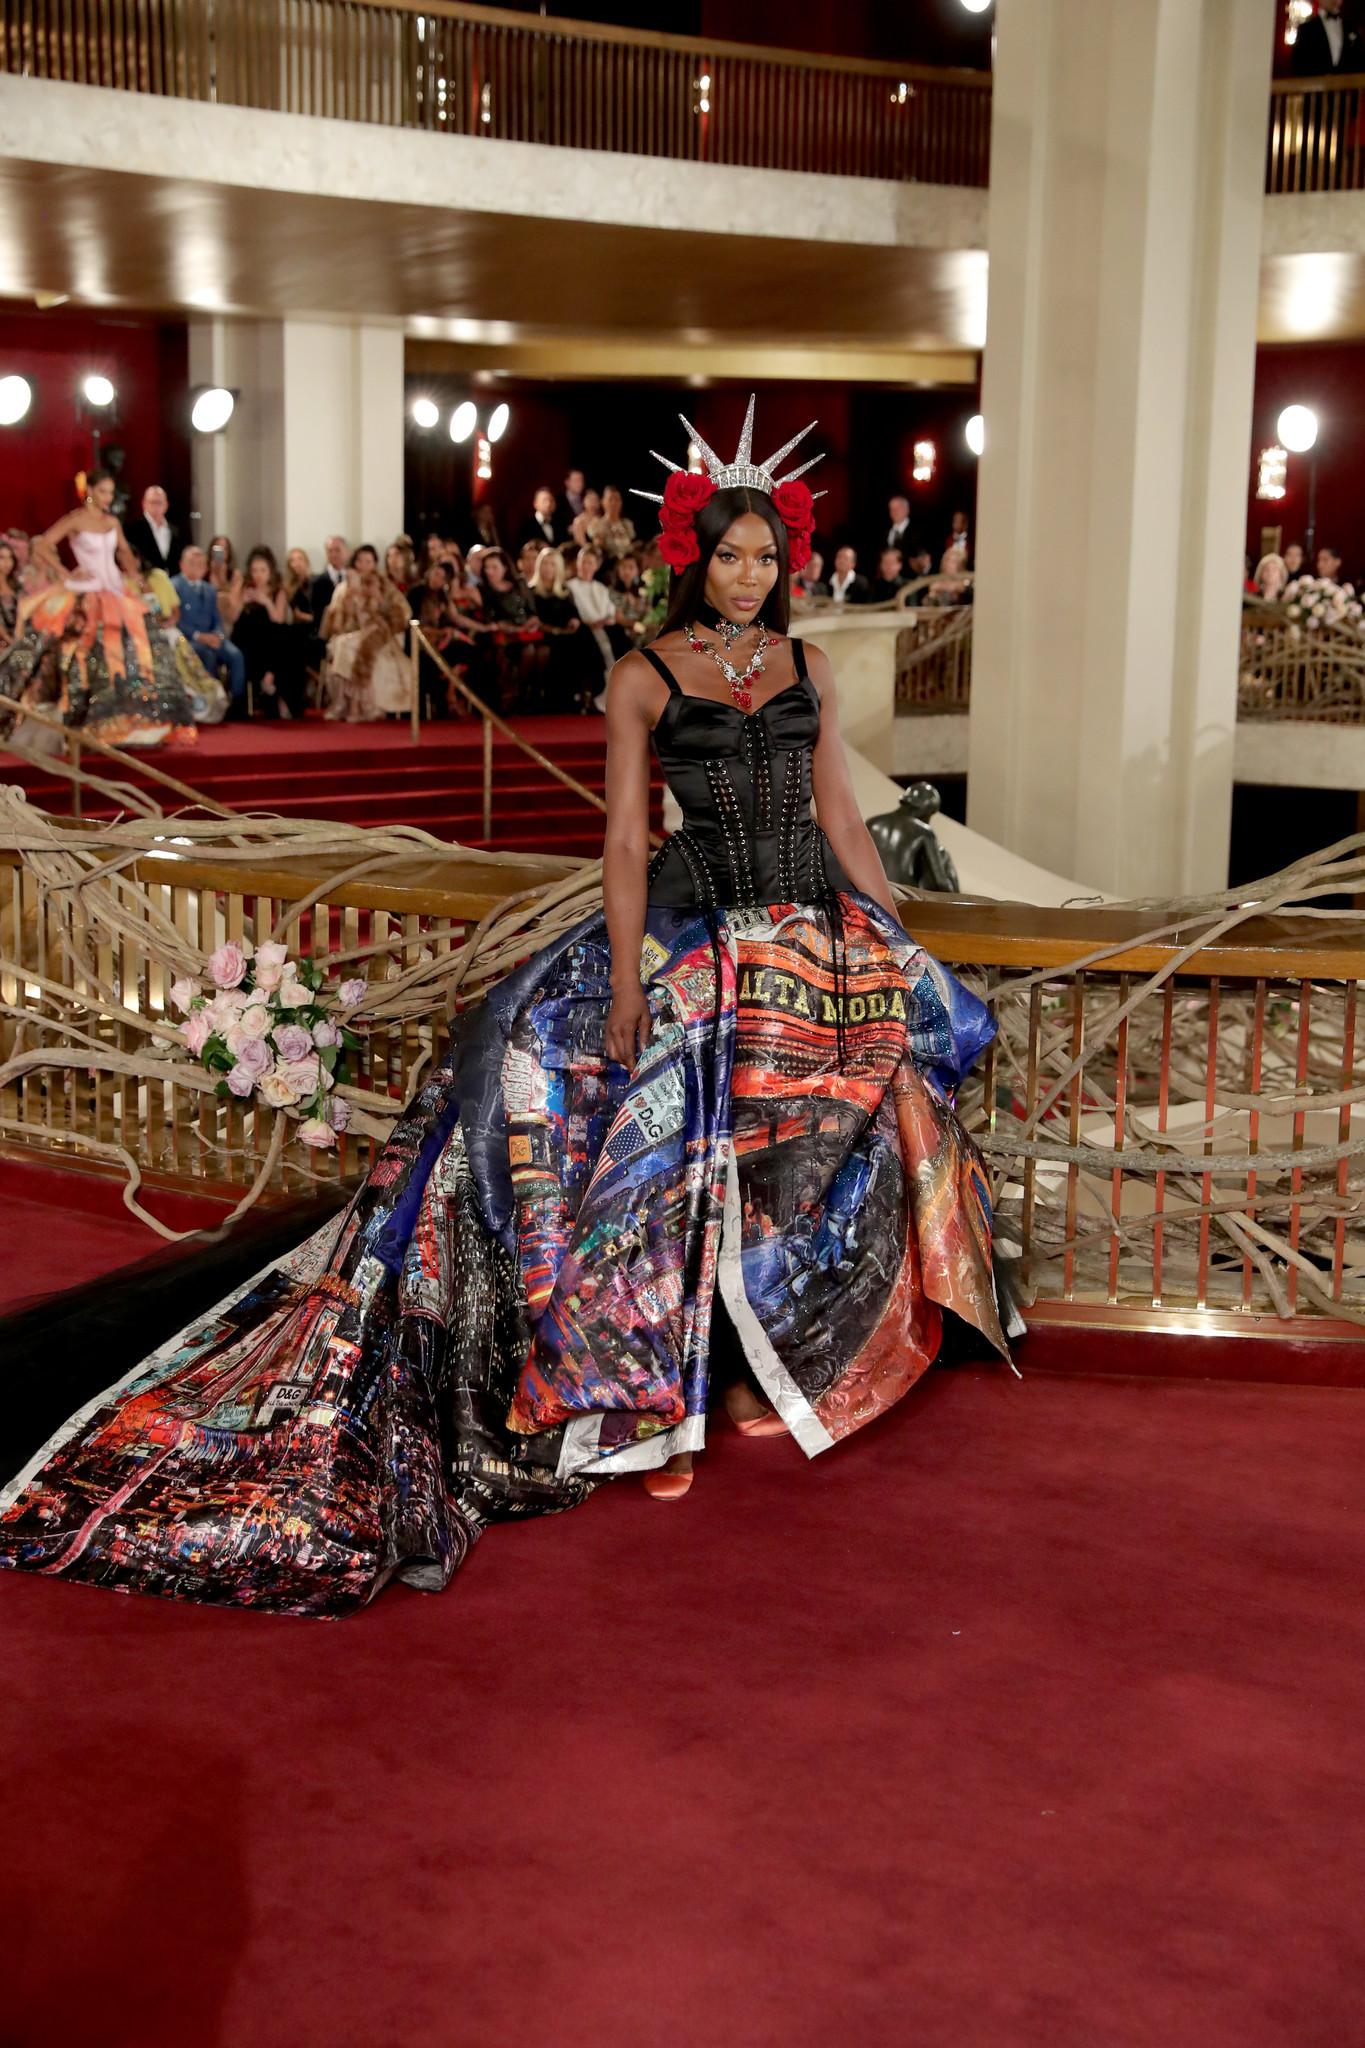 Naomi Campbell closes Dolce & Gabbana's Alta Moda show at the Metropolitan Opera in New York on April 8.